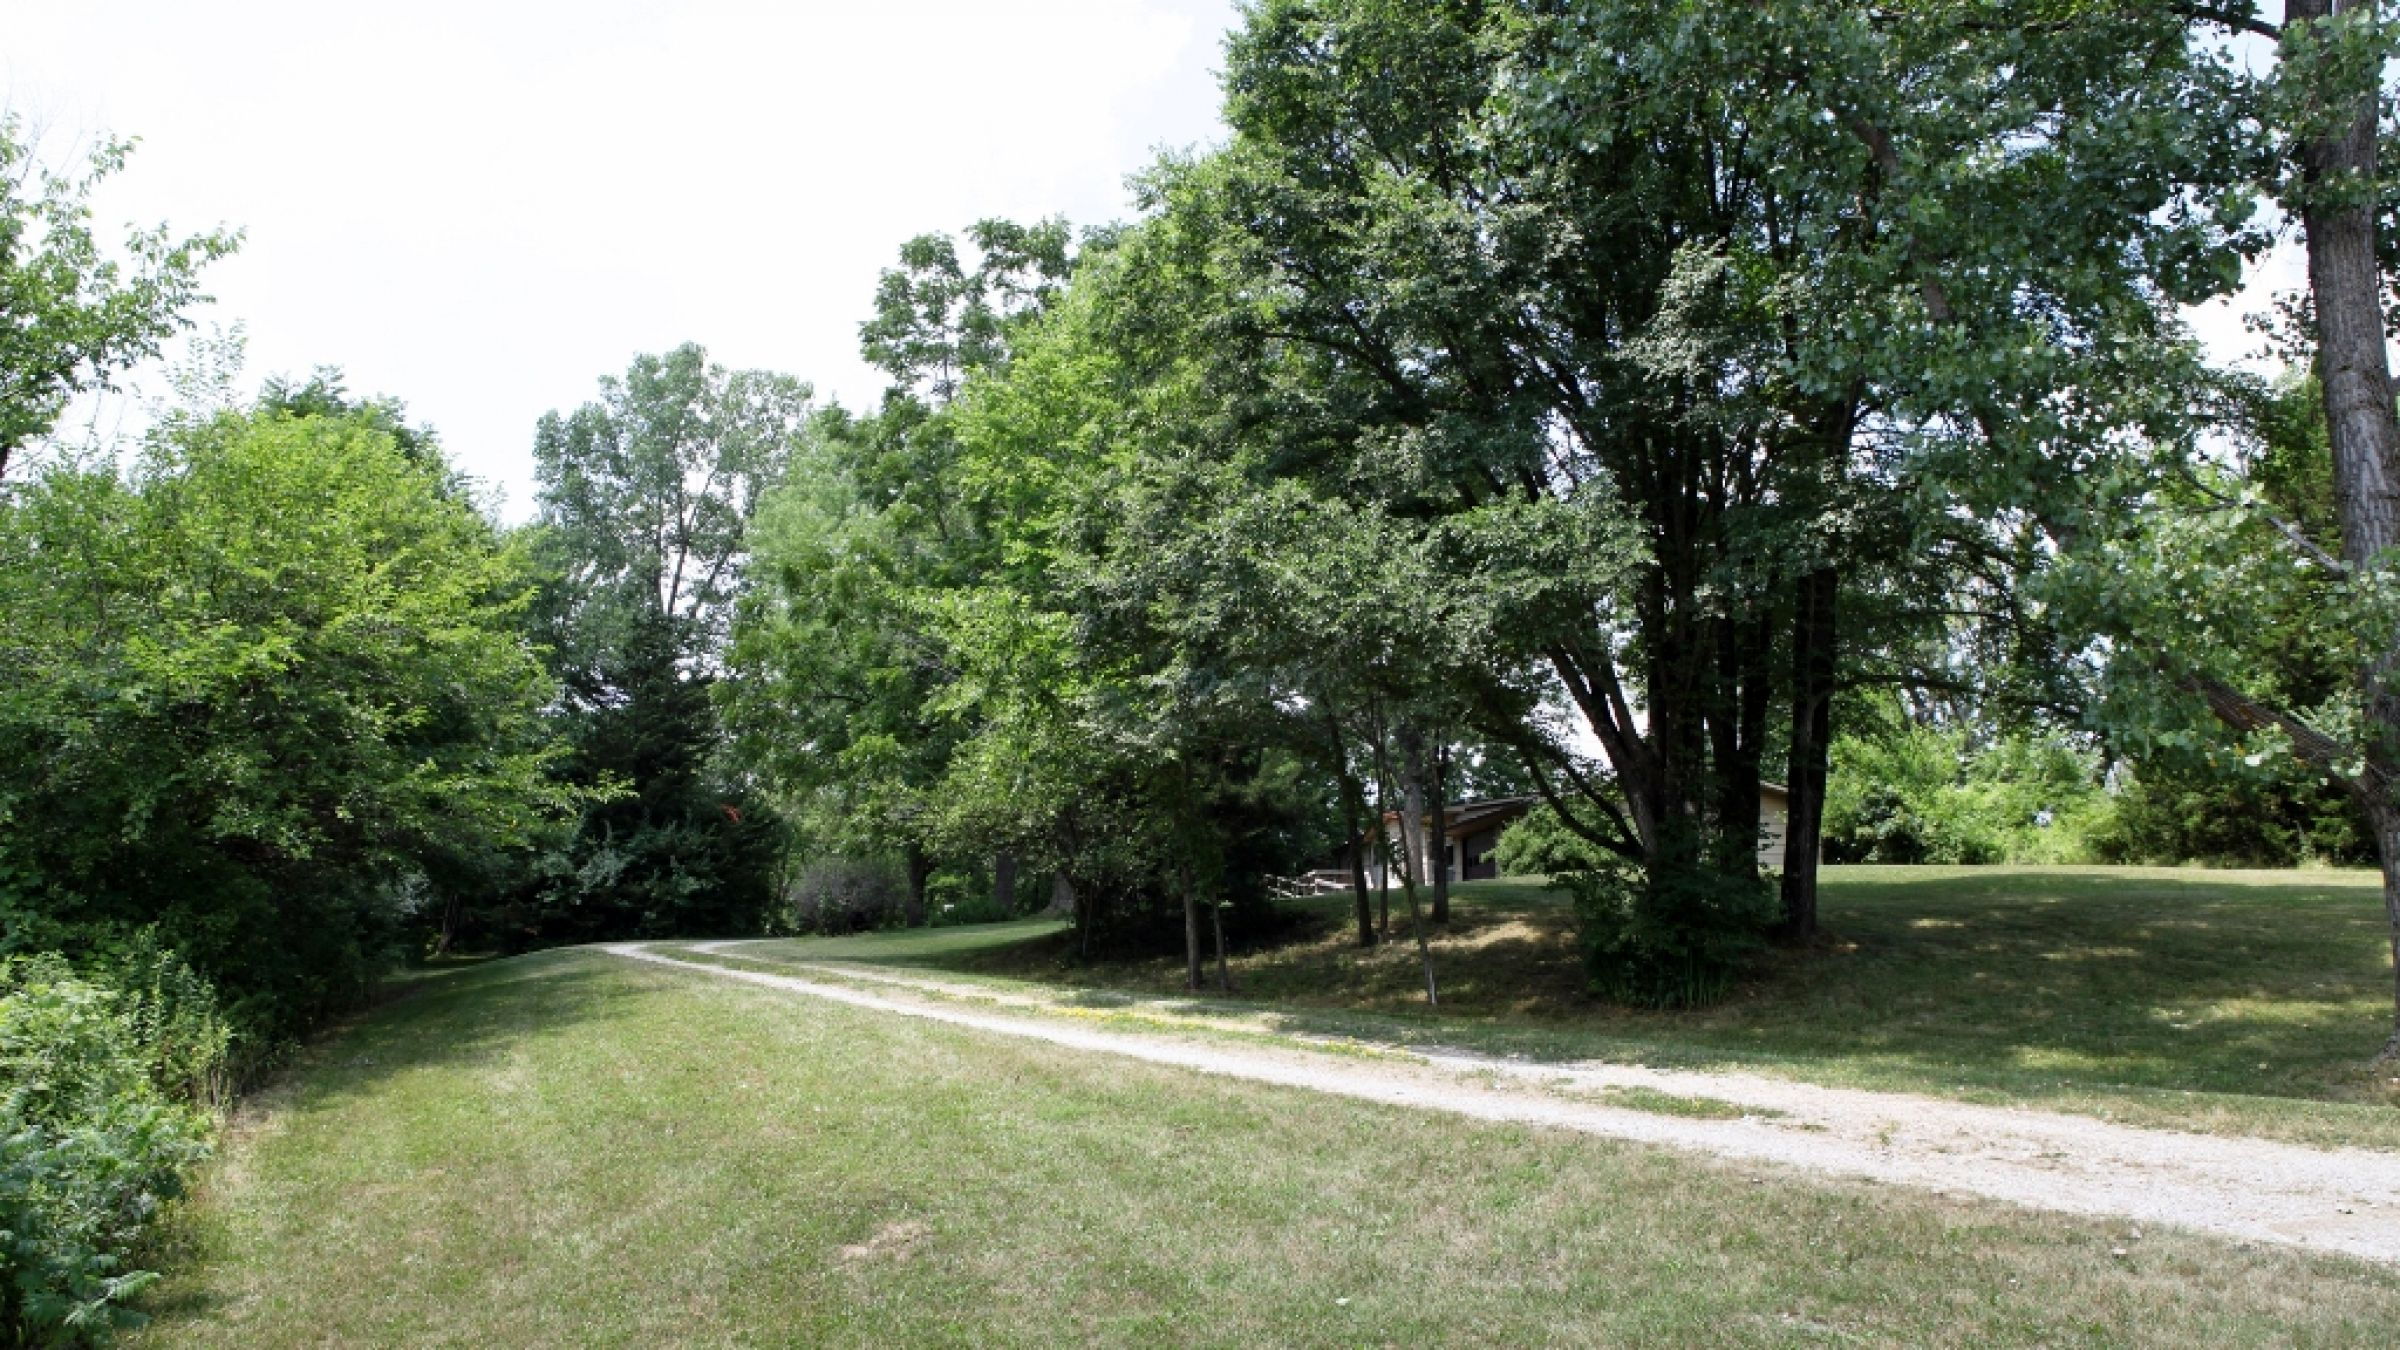 residential-lucas-county-iowa-2-acres-listing-number-15392-1-2021-03-03-215610.JPG